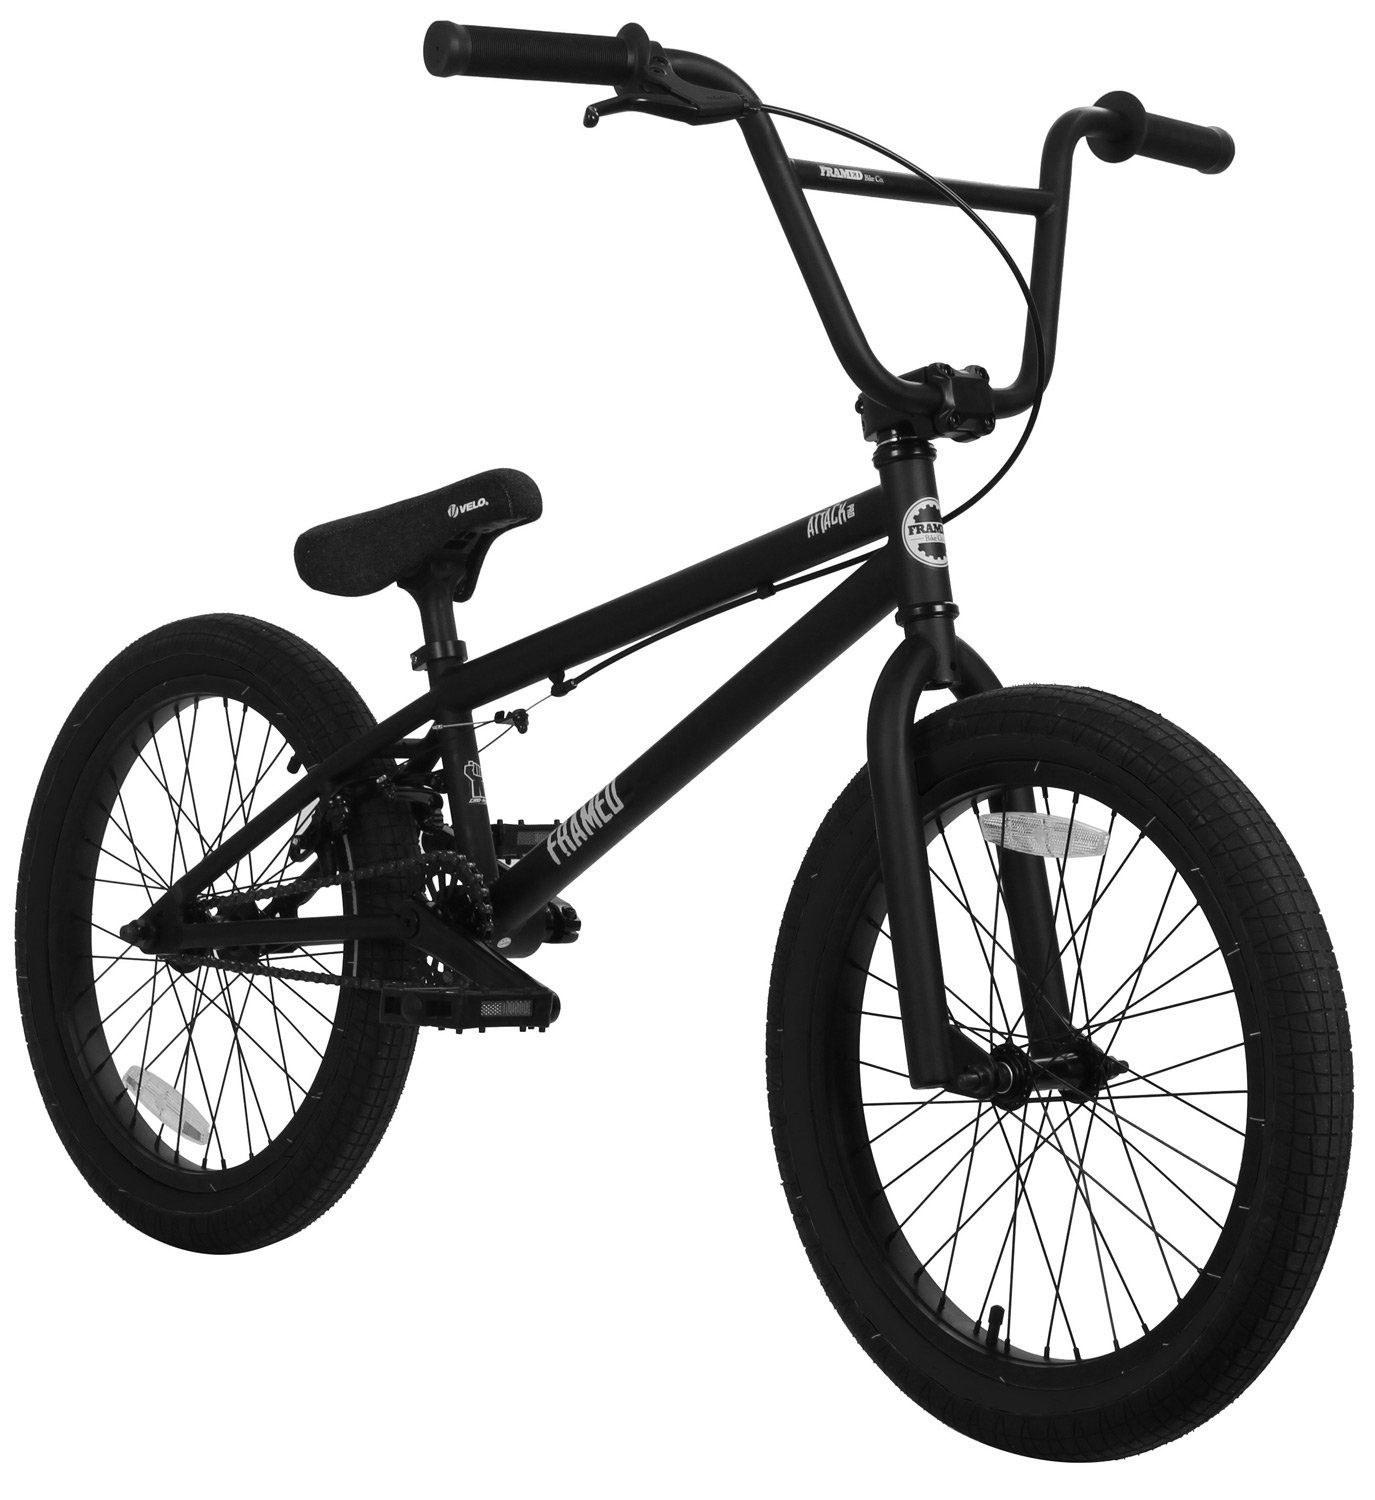 Framed Attack Pro Bmx Bike Black Black Sz 20in Check Out This